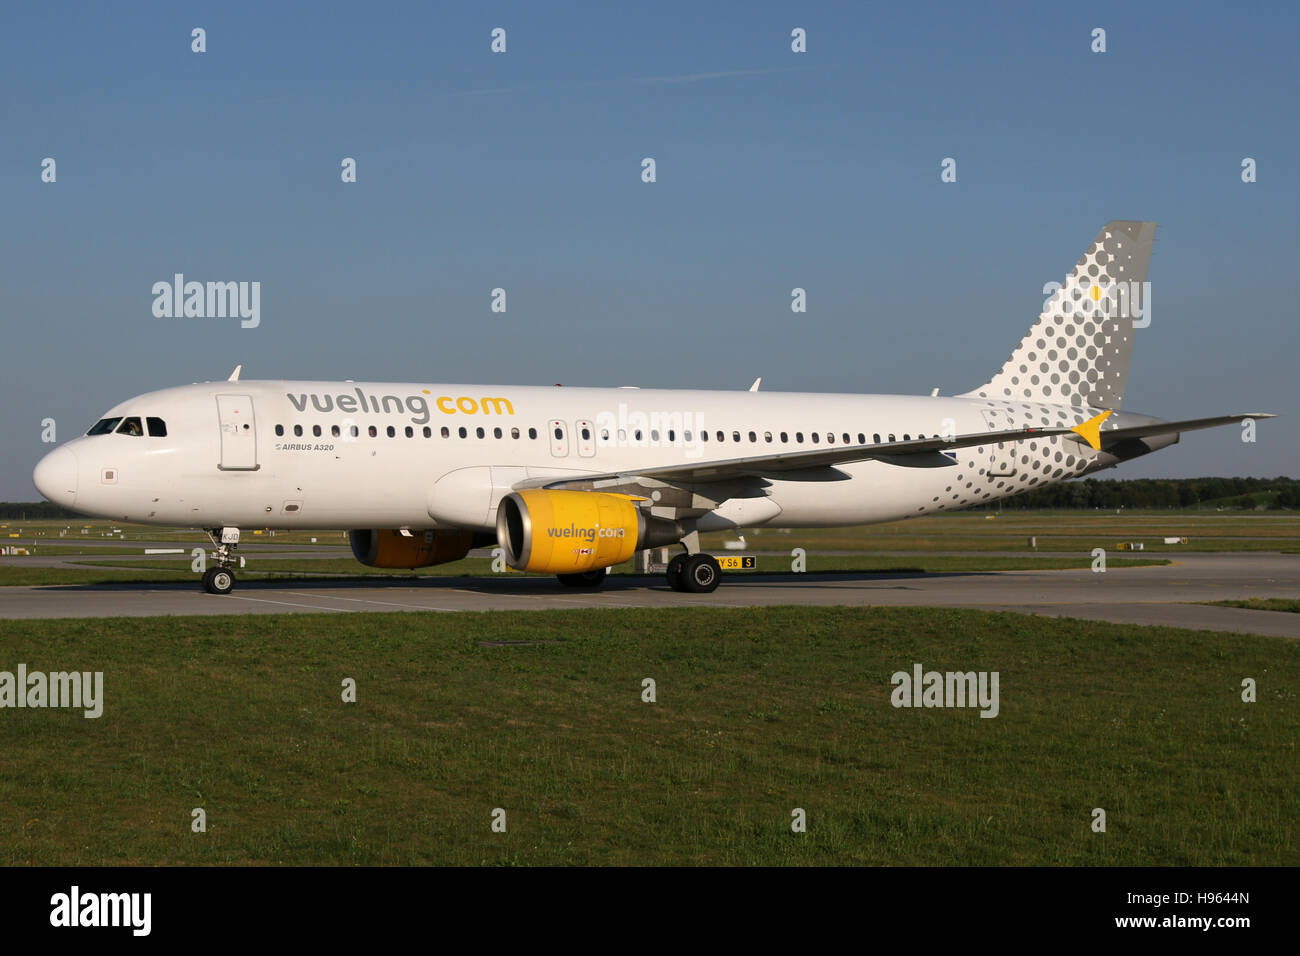 Munich, Germany - August 08, 2016: Vueling, Airbus A320 at Munich Airport - Stock Image